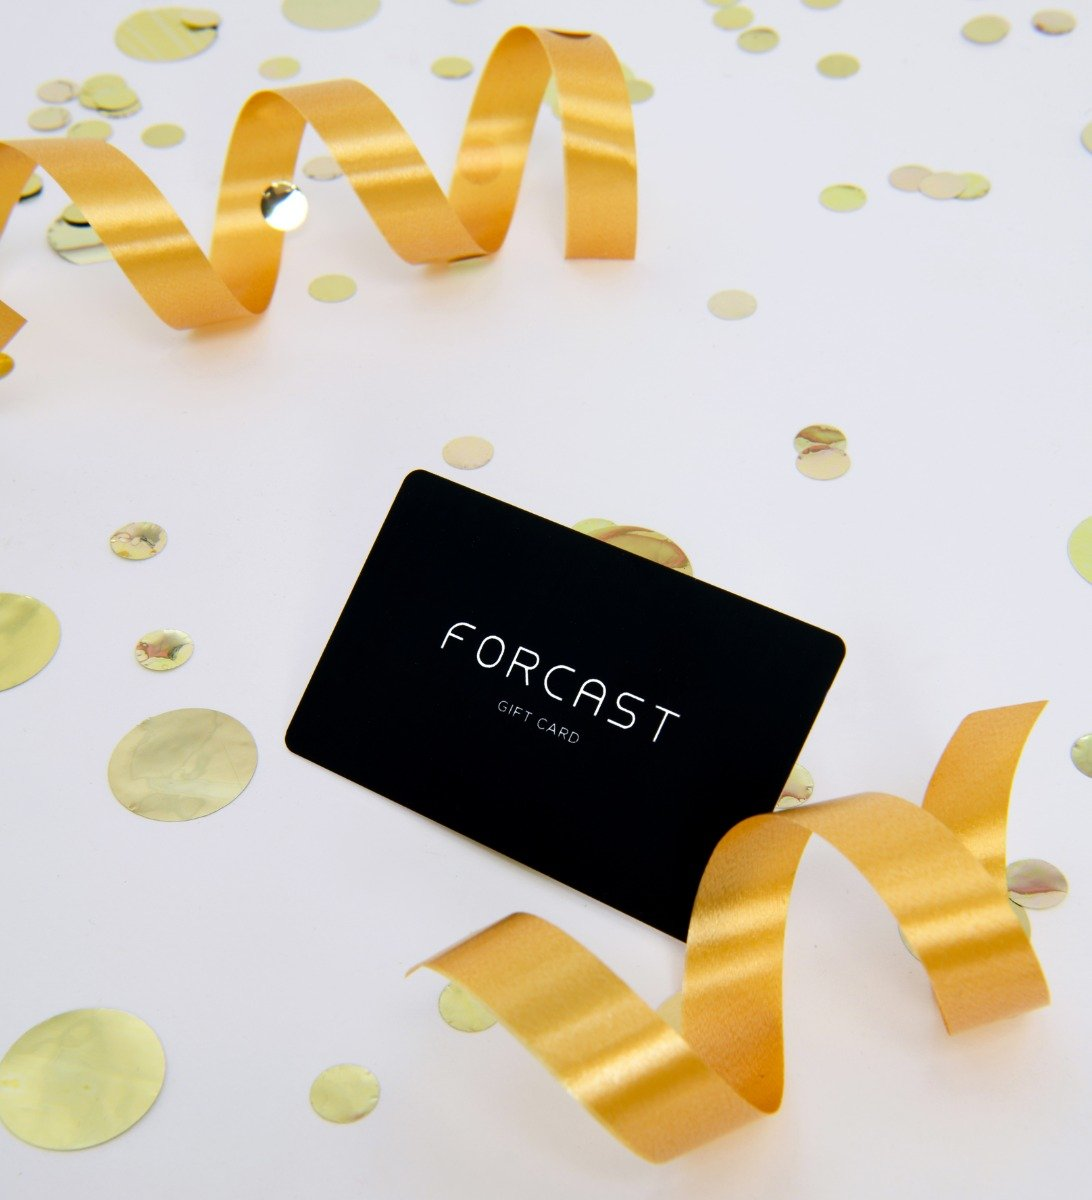 Image of the forcast gift-card